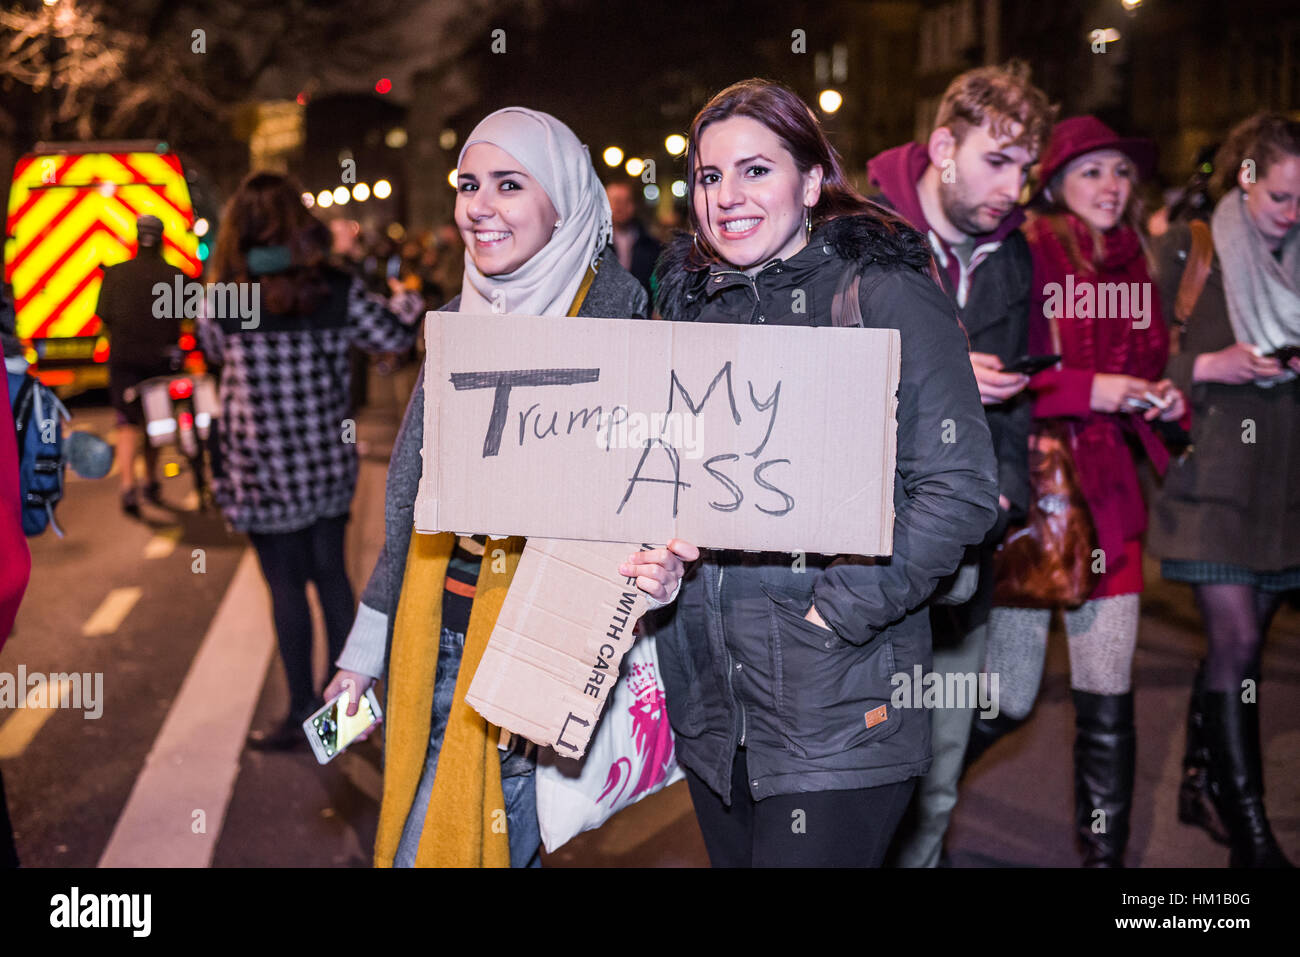 30th January, 2017. London. People attend a rally against US President Donald Trump's travel ban policy targeting - Stock Image